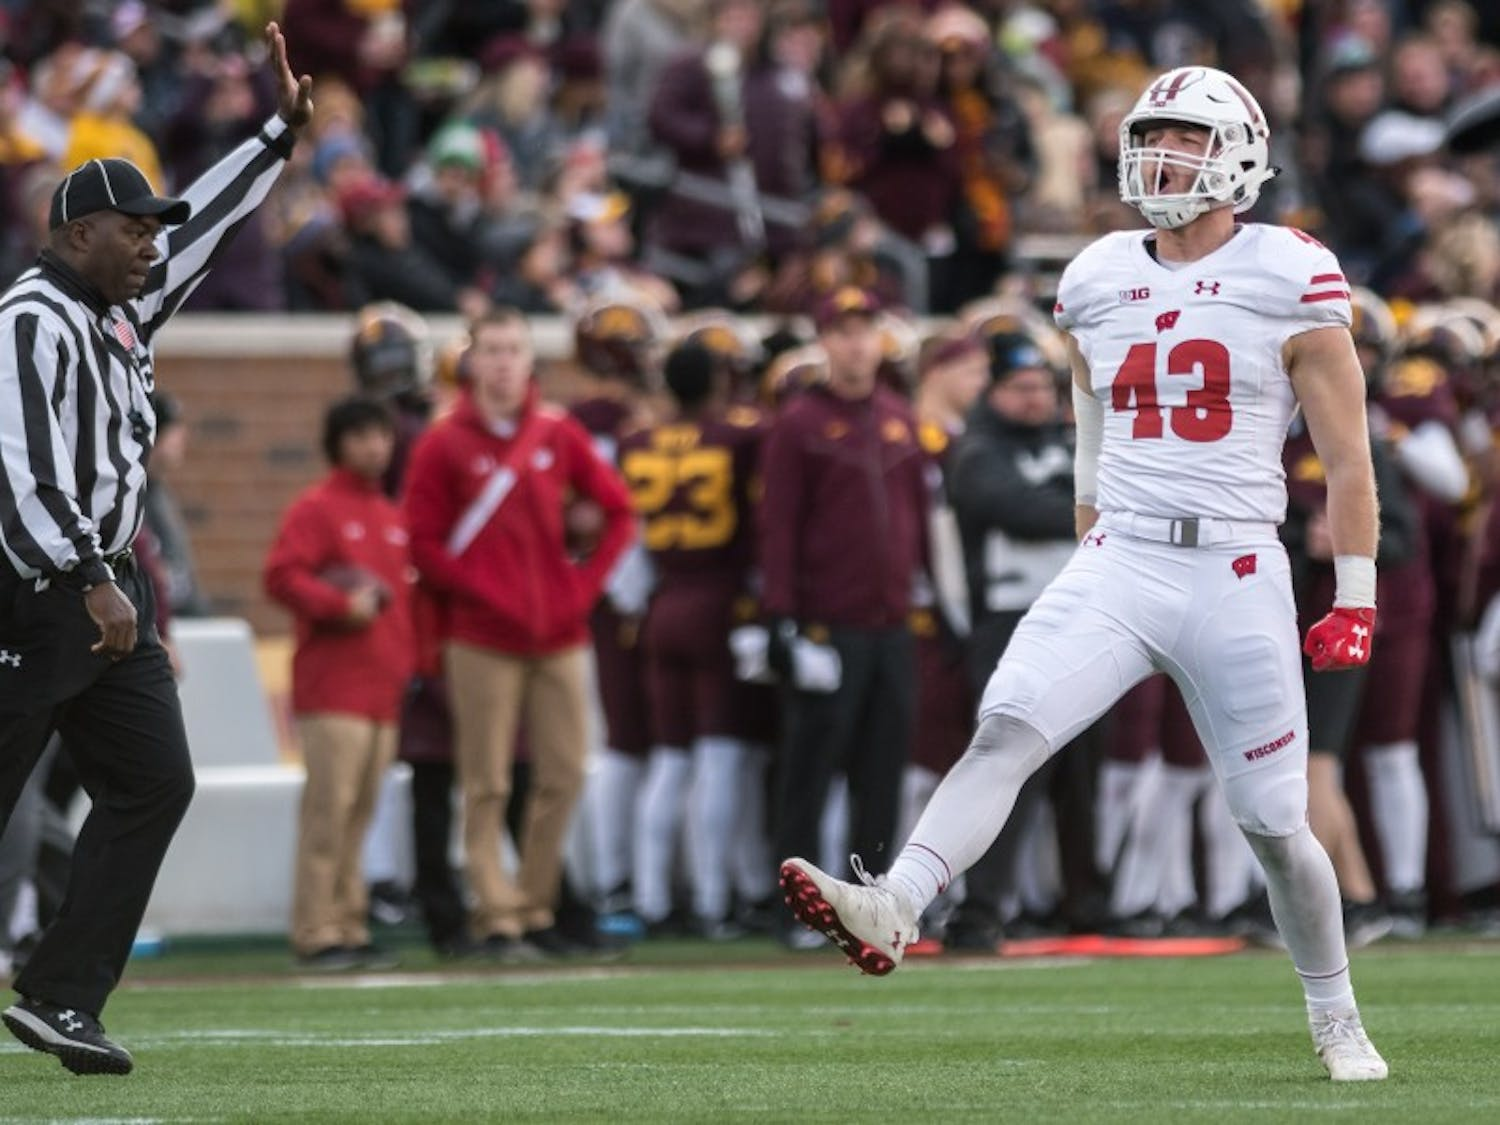 After a 31-0 win over Minnesota, Wisconsin hopes to replicate its success against Ohio State.